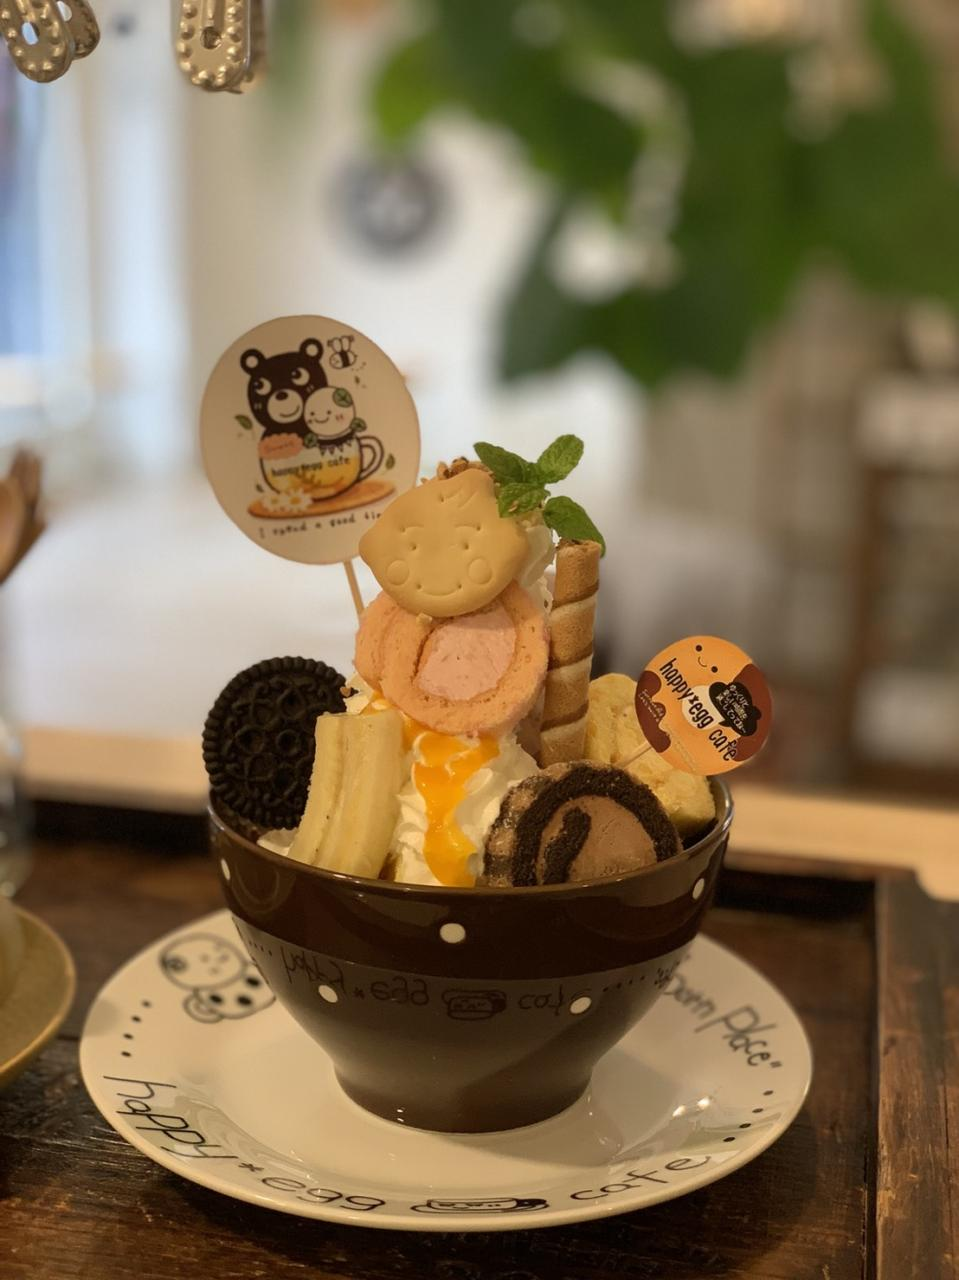 Happy*egg cafe(ハッピーエッグカフェ)